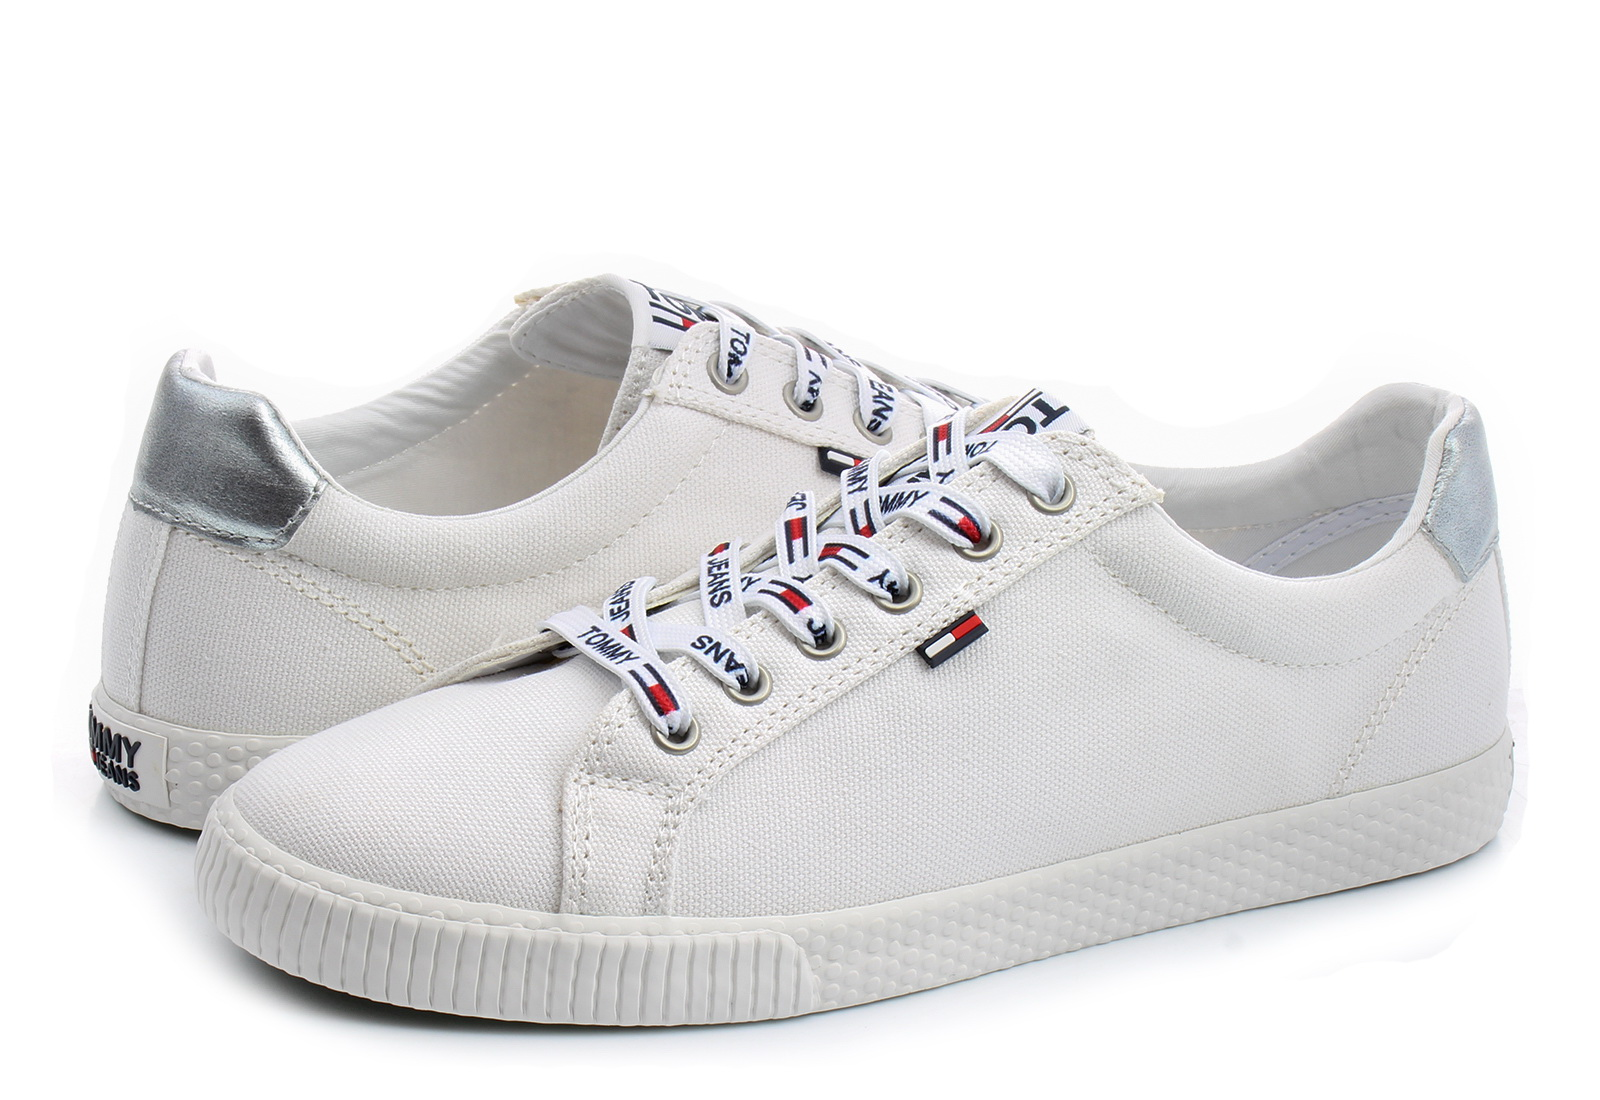 39b6874f80 Tommy Hilfiger Cipő - Hazel 1c2 - 19S-0602-100 - Office Shoes ...